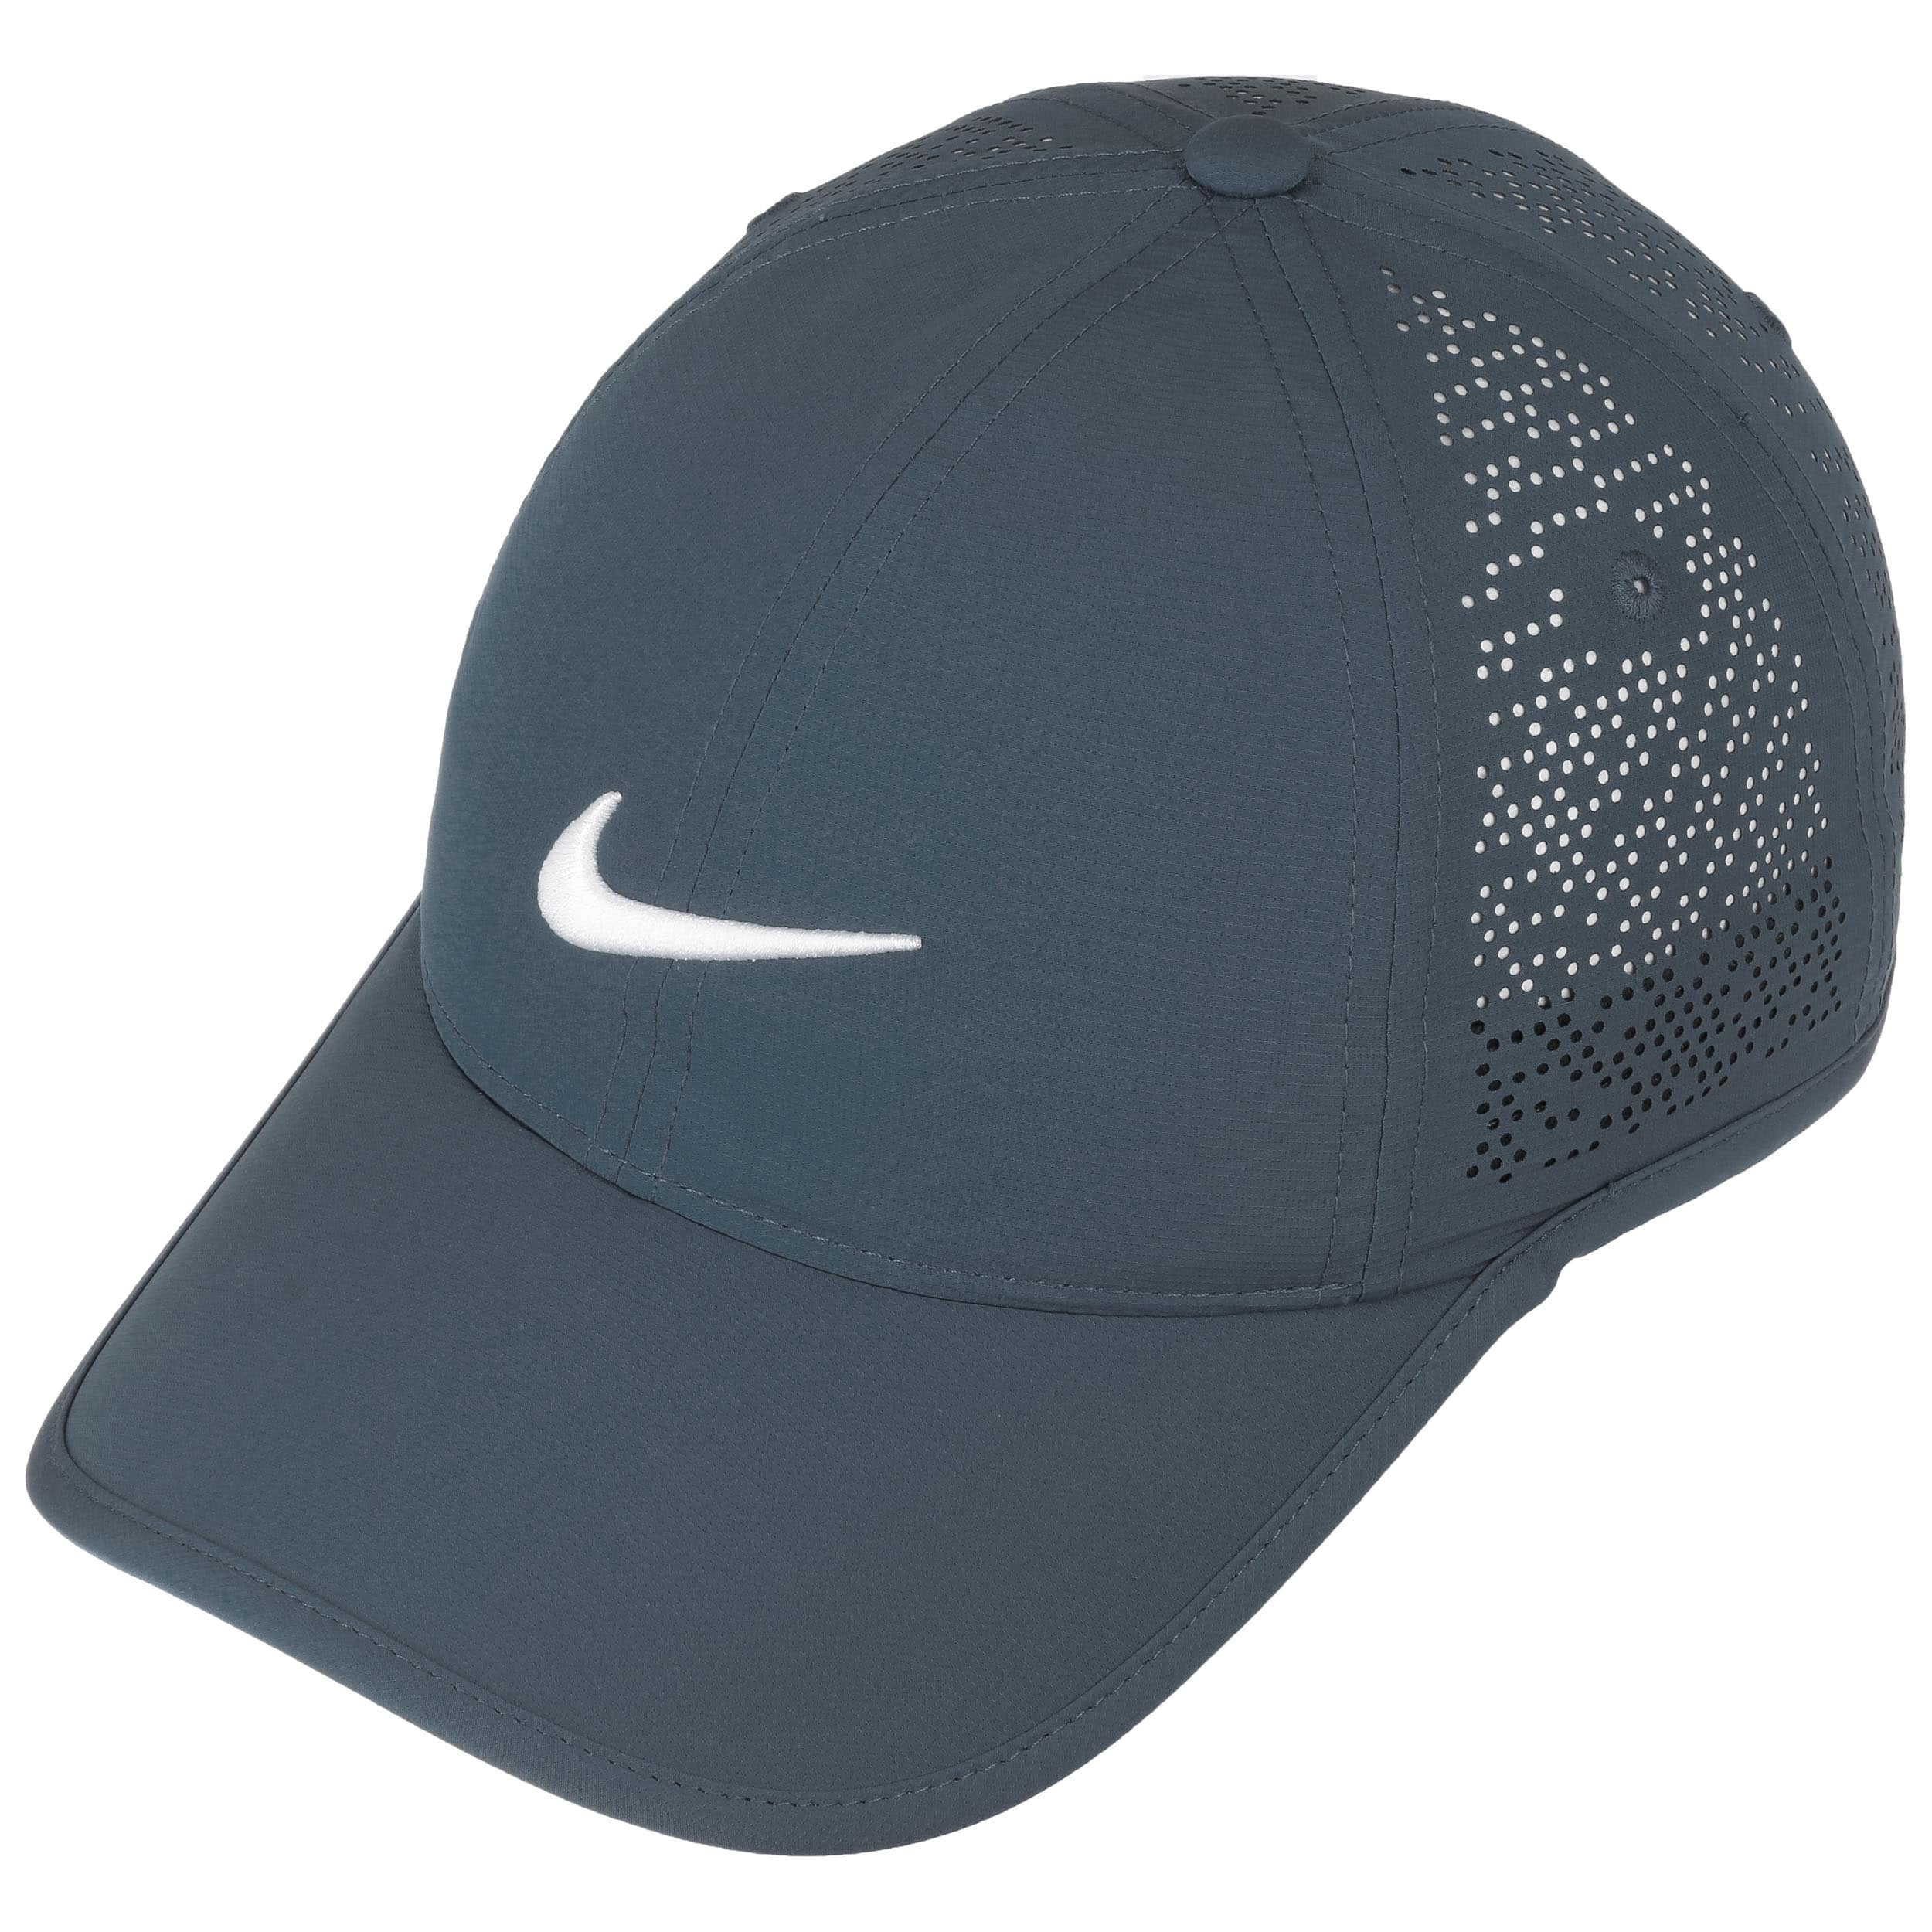 a7d614bcf72 ... Swoosh Perforation Cap by Nike - navy 1 ...